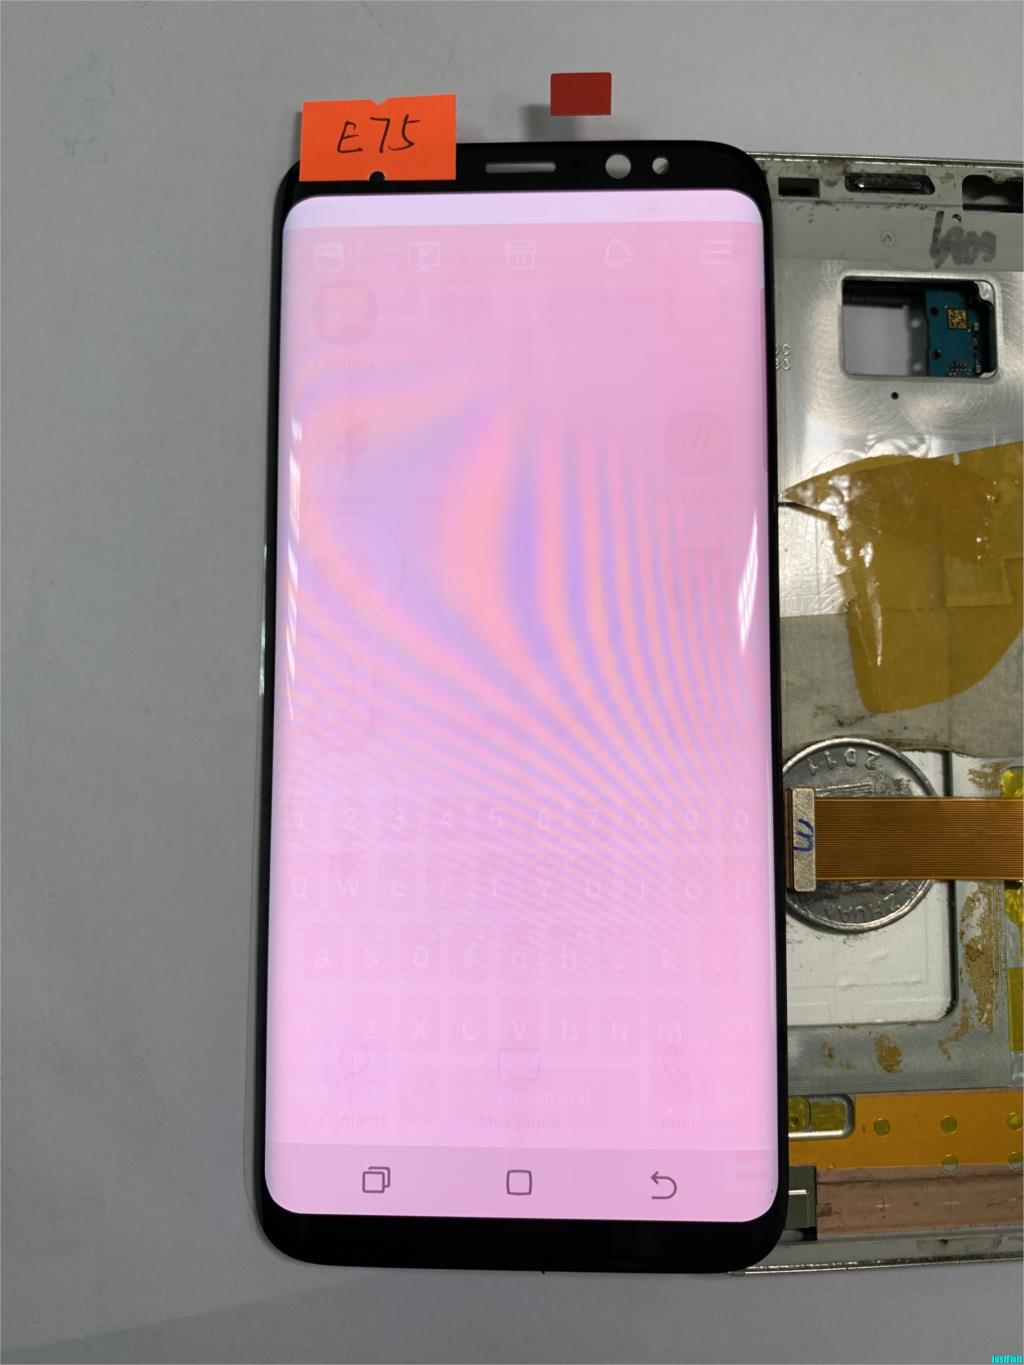 NO.E75 For Samsung Galaxy S8 G950f G950fd G950u Burn-in shadow Lcd Display Touch Screen Digitizer Super AMOLED ScreenNO.E75 For Samsung Galaxy S8 G950f G950fd G950u Burn-in shadow Lcd Display Touch Screen Digitizer Super AMOLED Screen